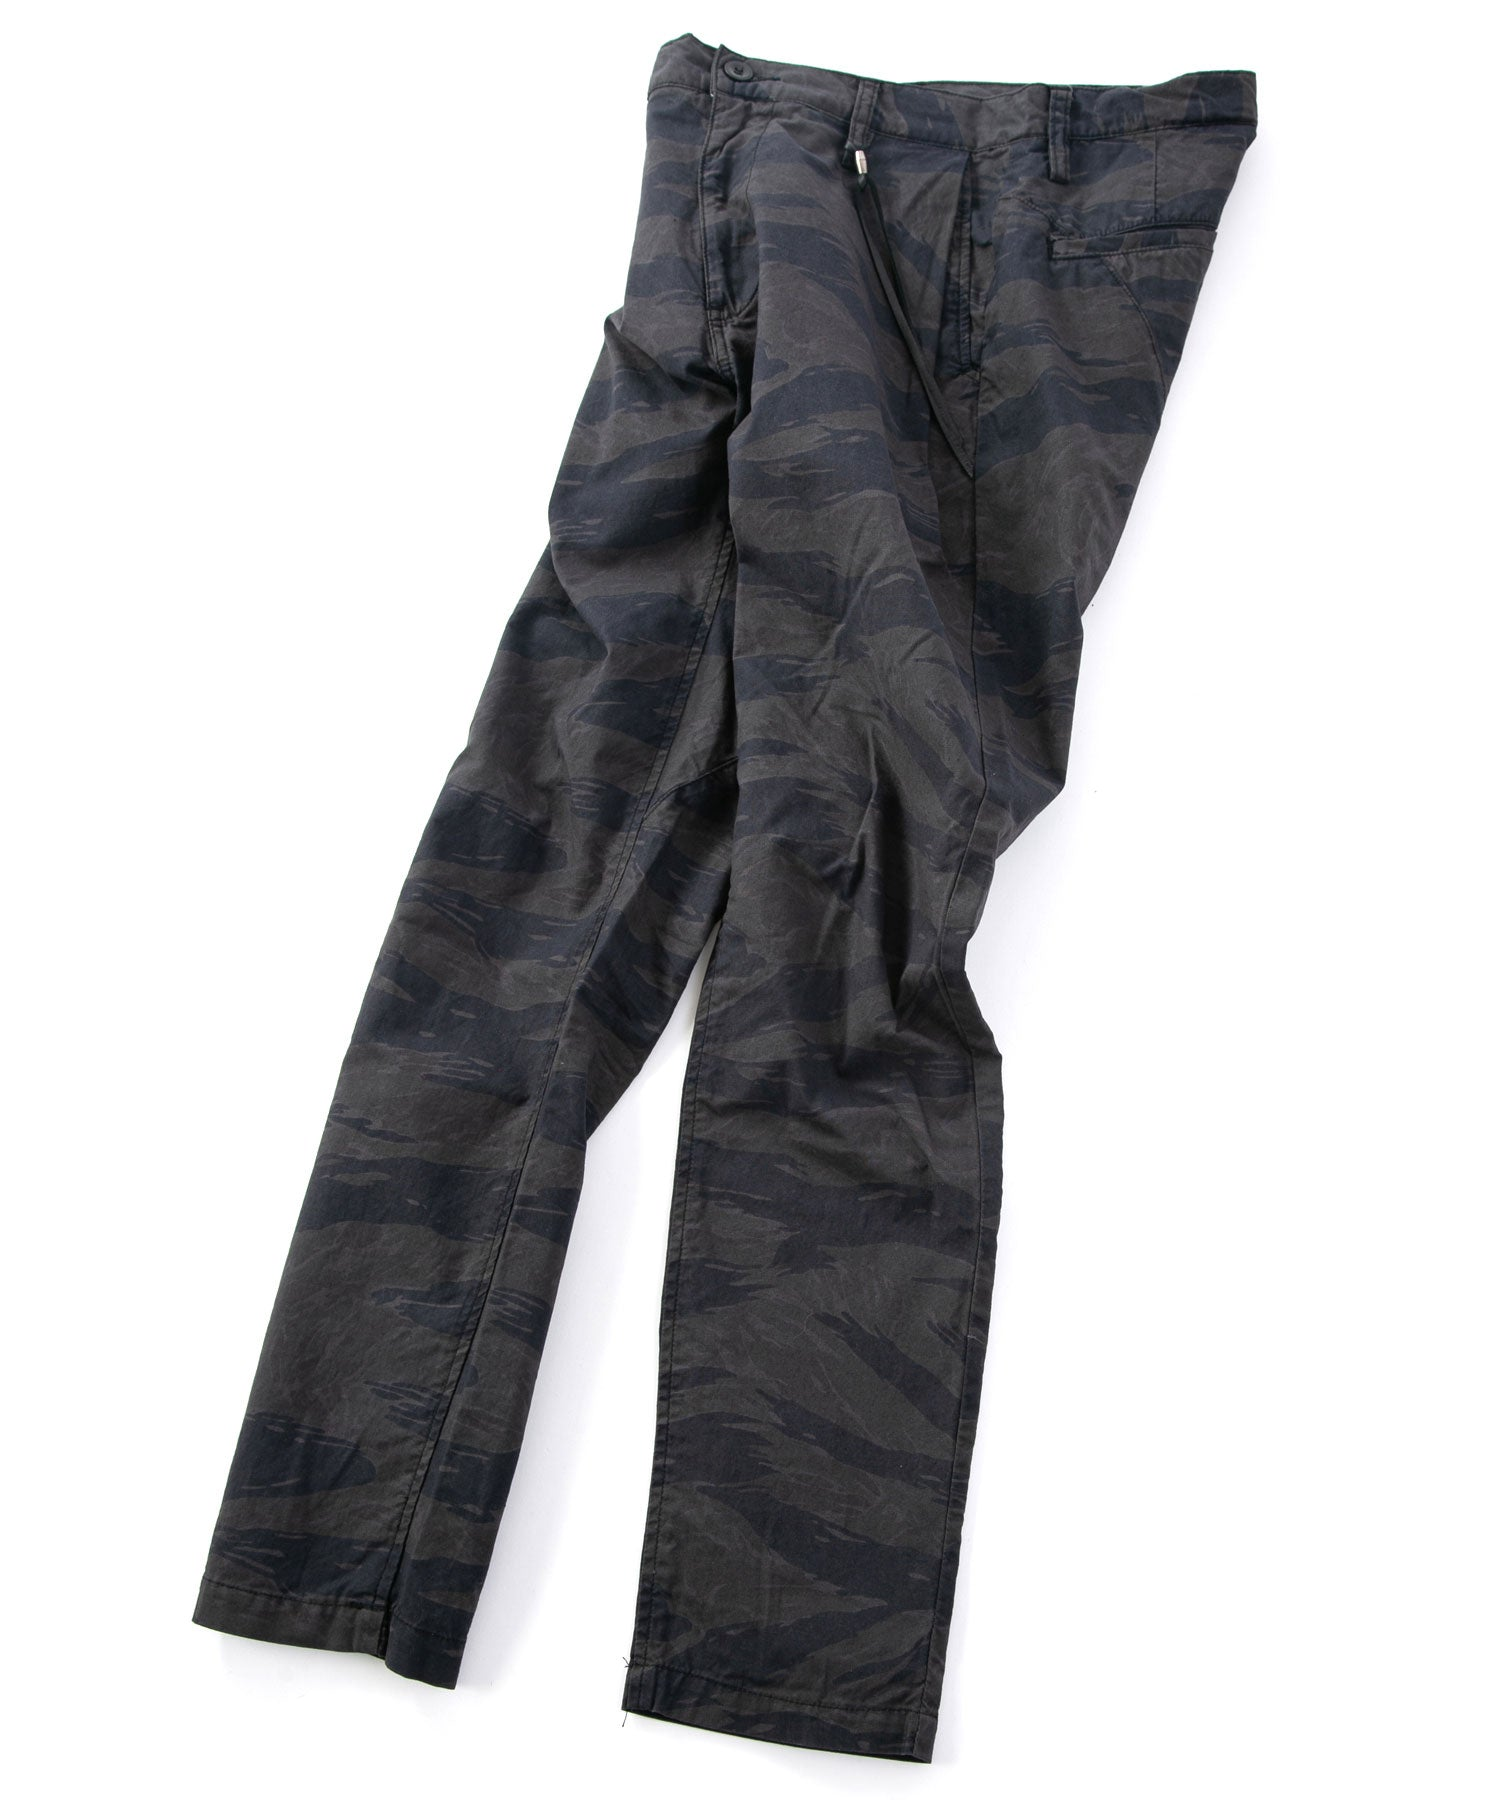 Load image into Gallery viewer, Tiger Camo Pigment Print Tapered Pants / Camouflage